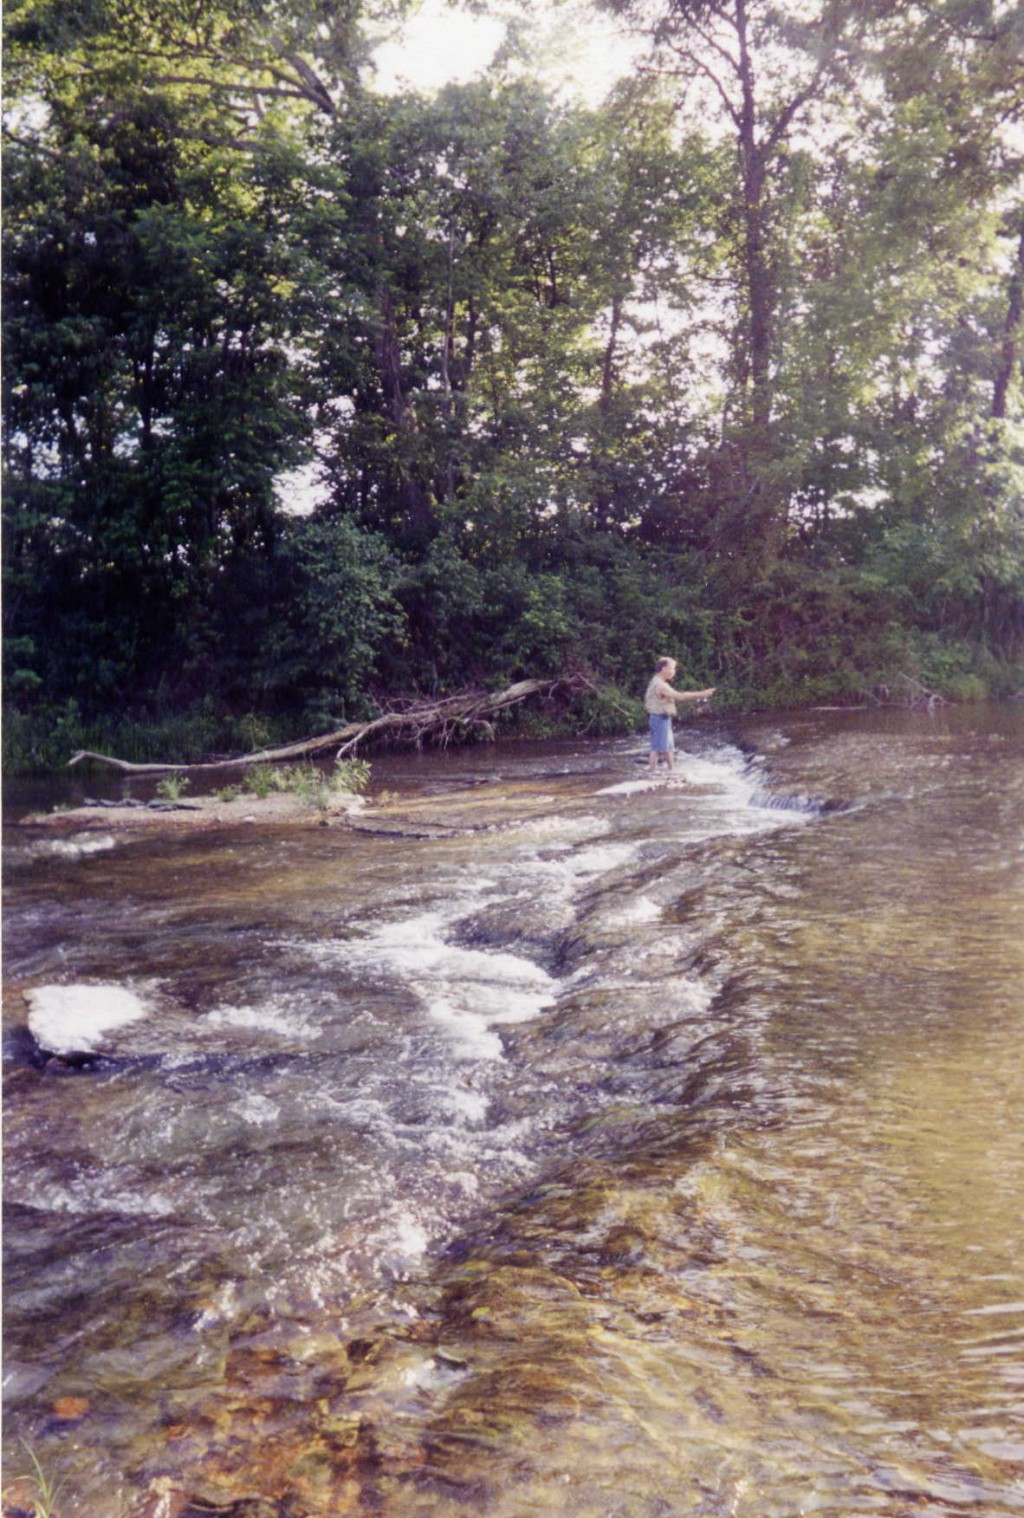 Fly fishing made easy in missouri for Fly fishing missouri